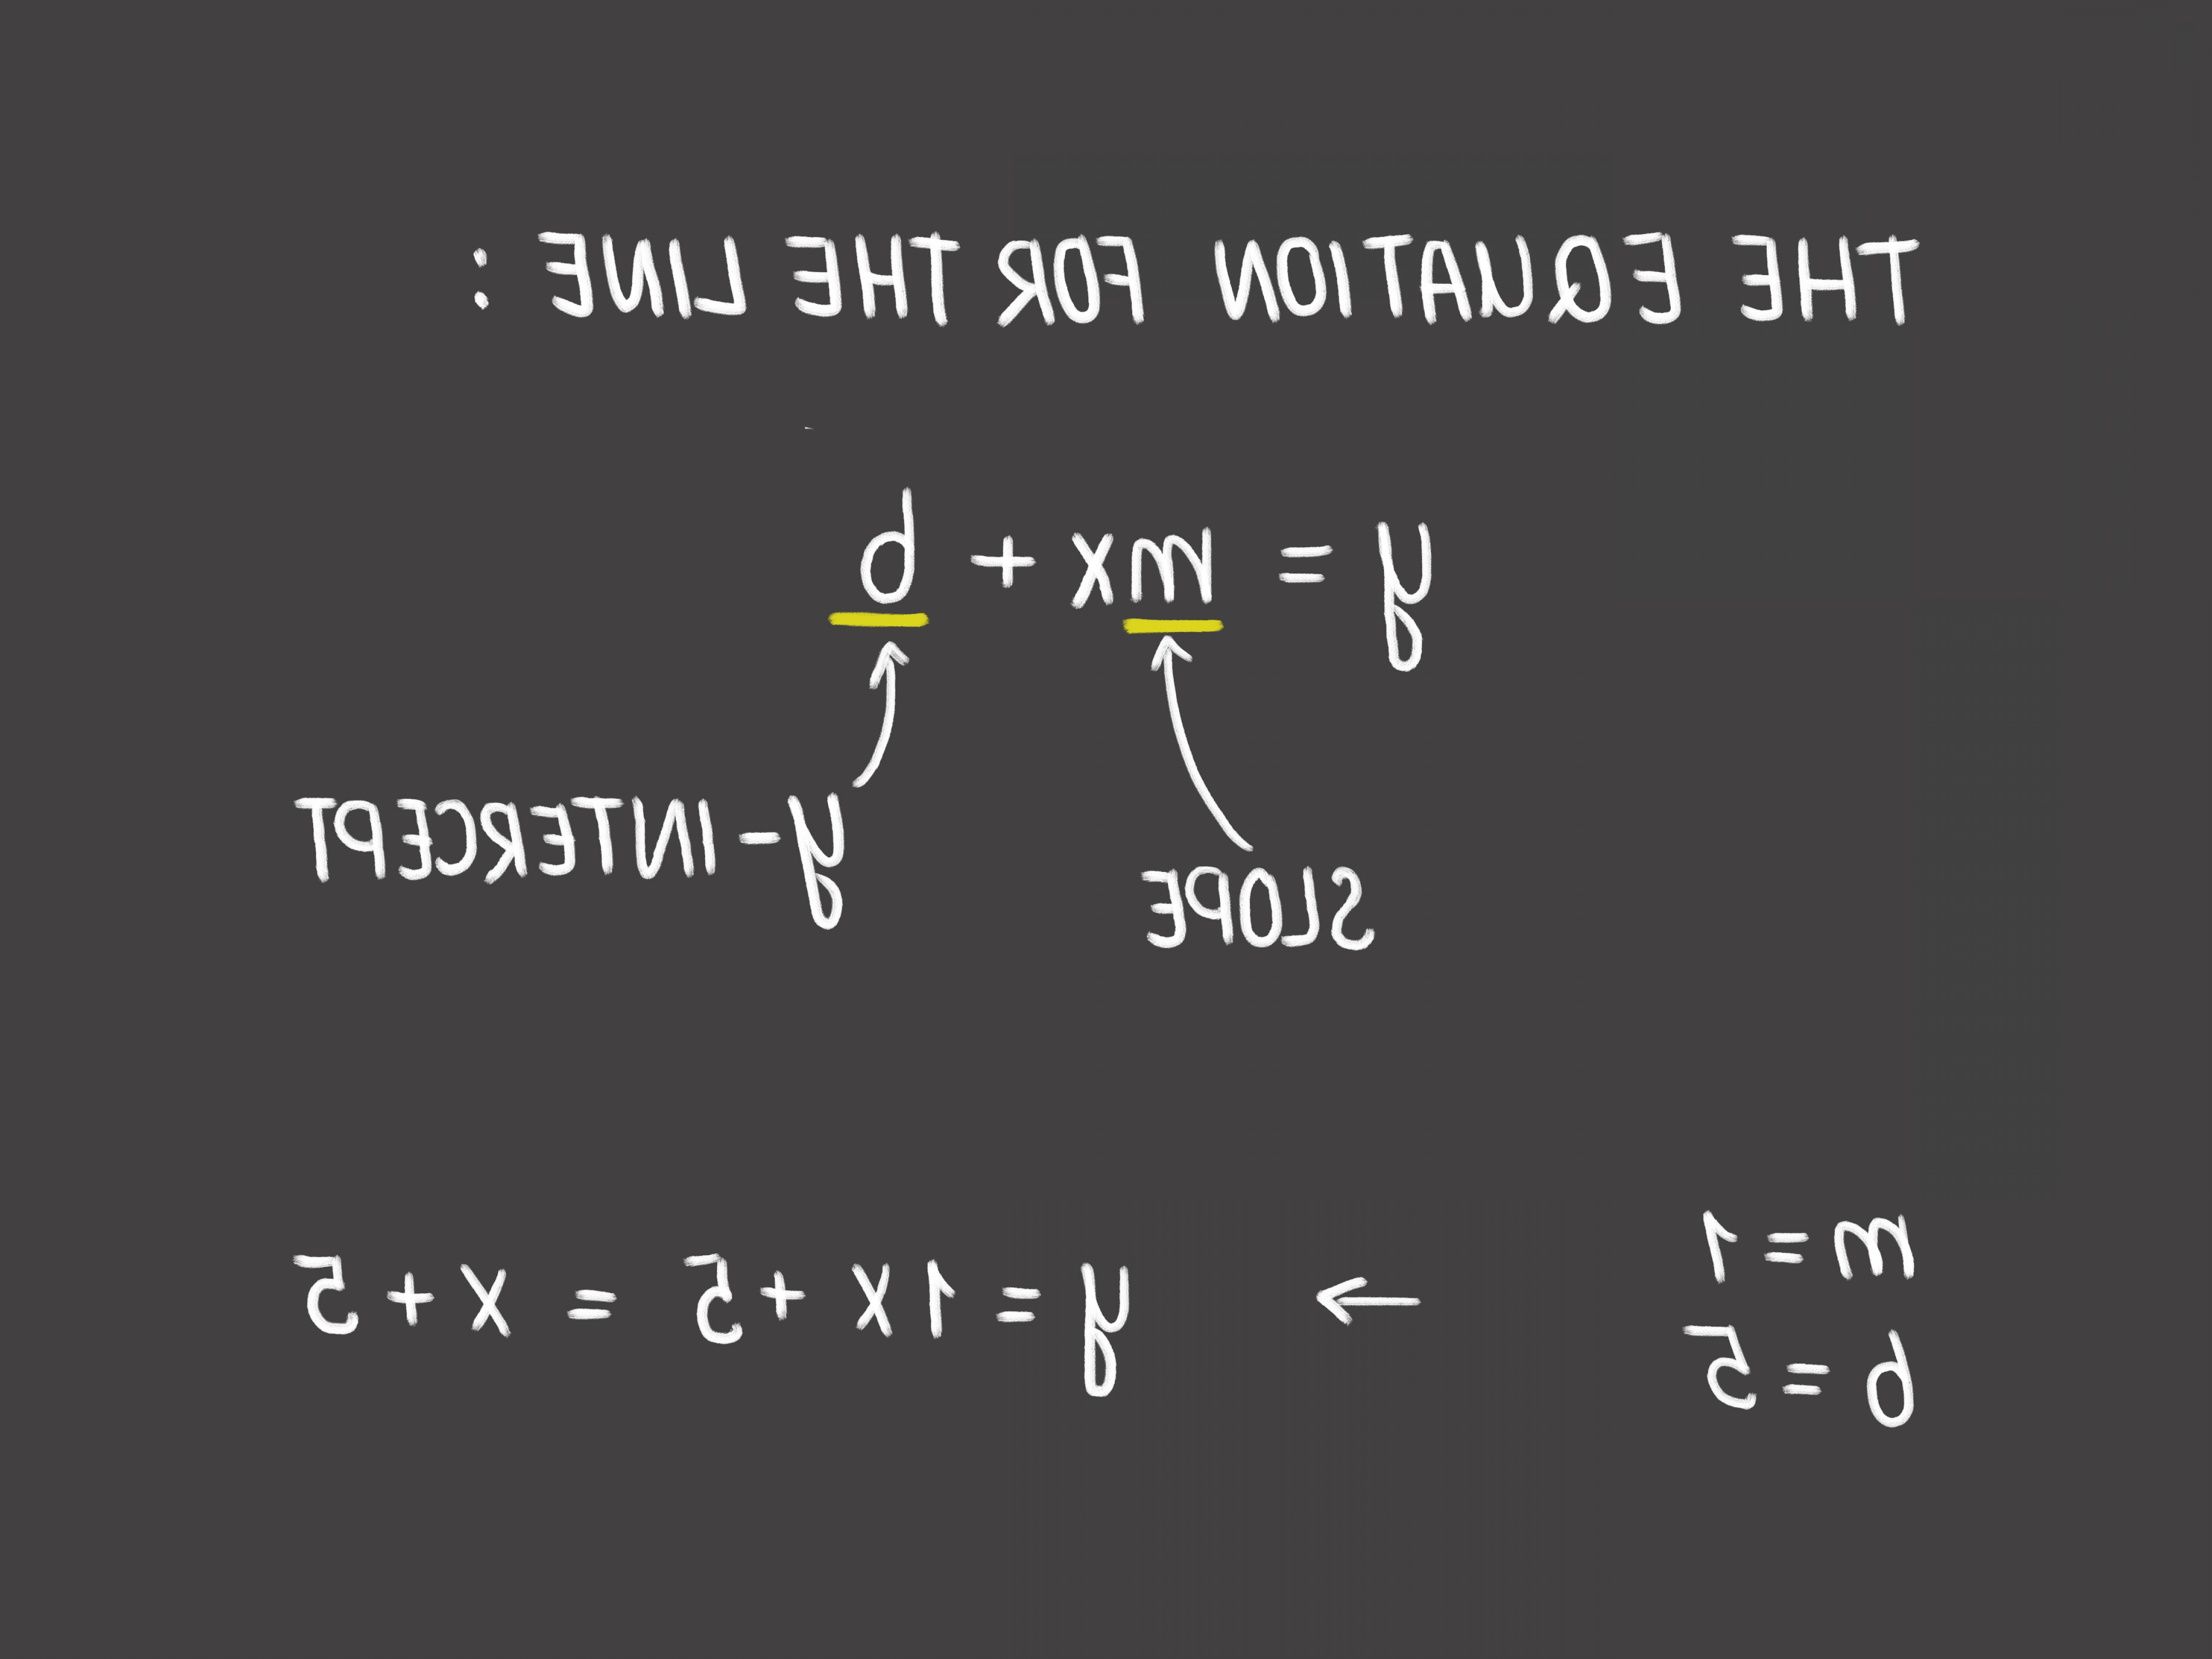 Ordered Pair Notation With Vectors: Find The Equation Of A Line